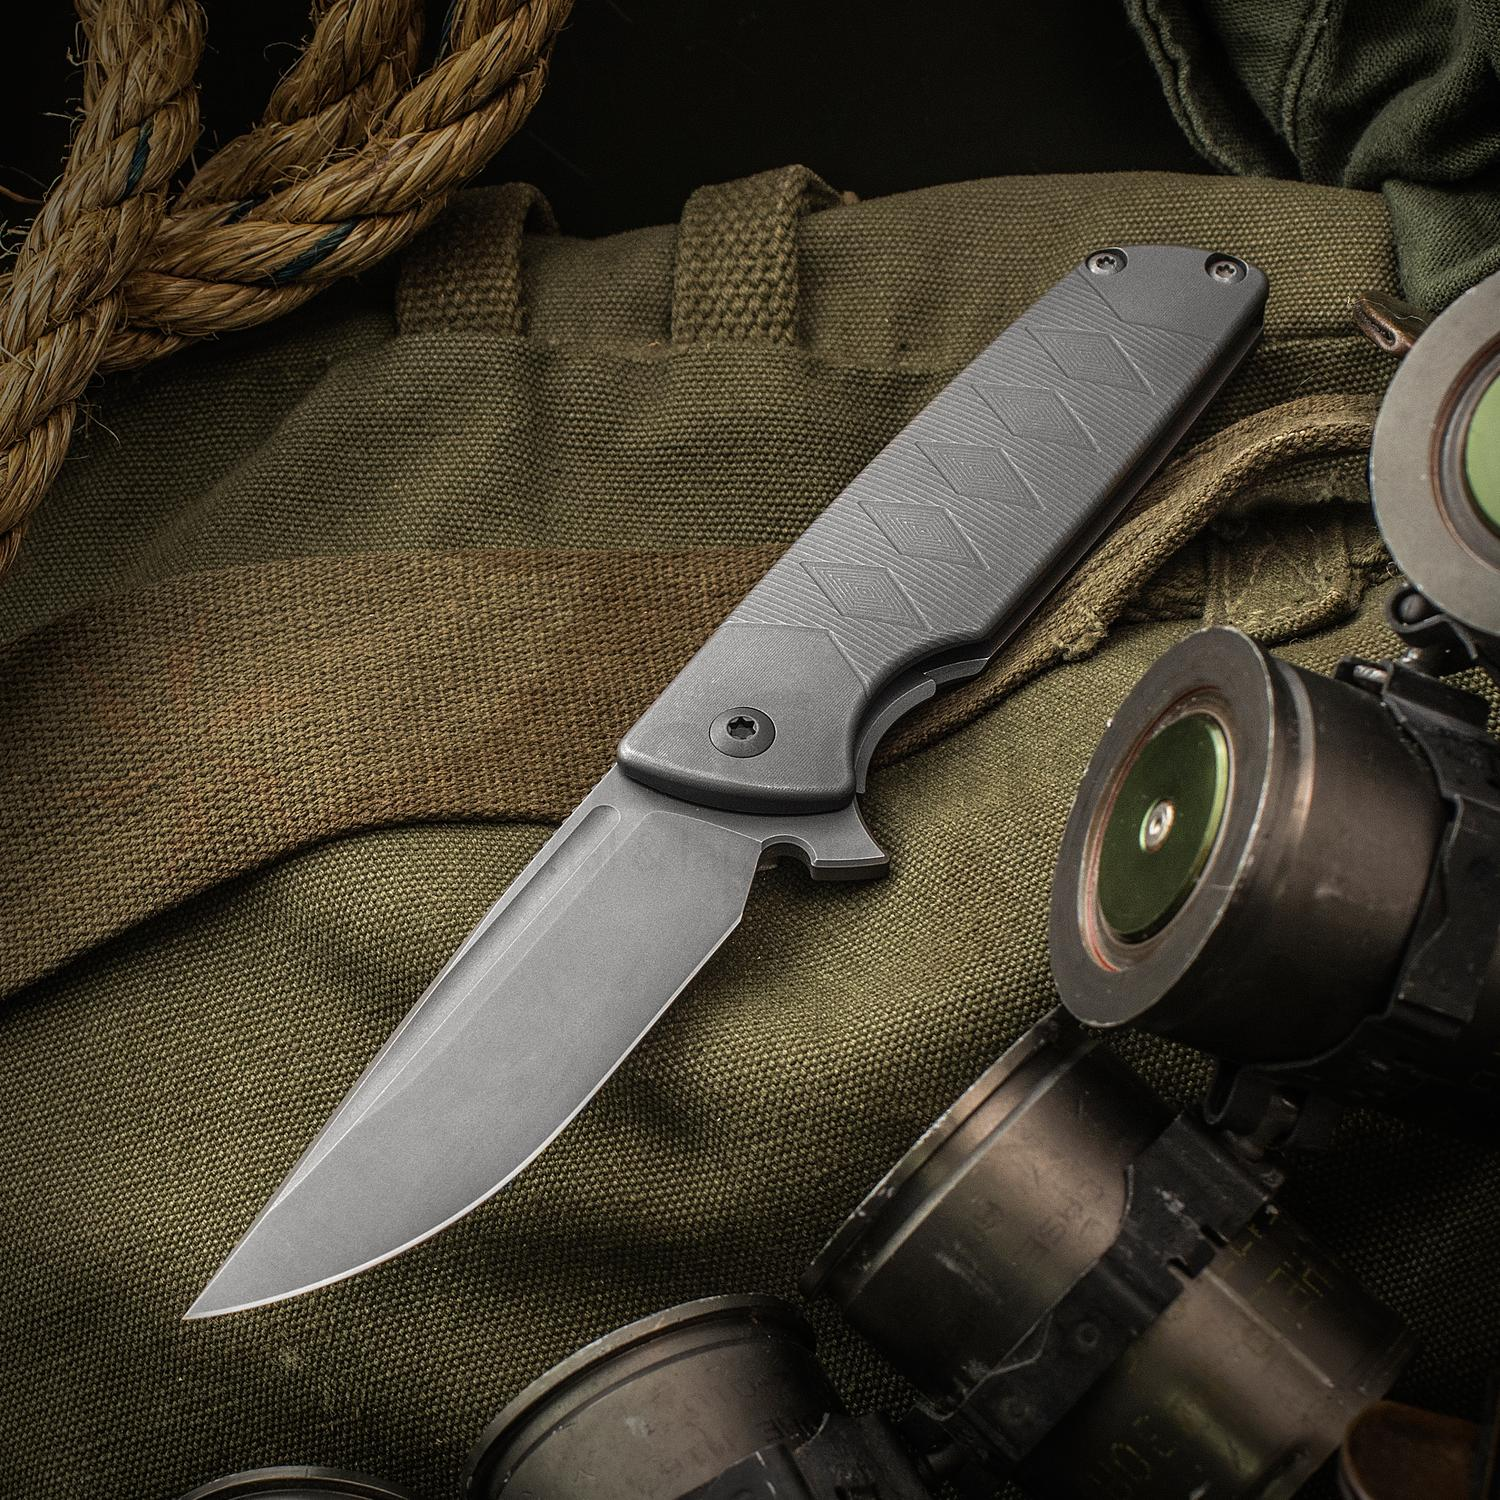 SharpByDesign Custom Mini Typhoon Flipper 3.5 inch CPM-S90V Drop Point Blade, 3D Machined Titanium Handles with Katana Pattern